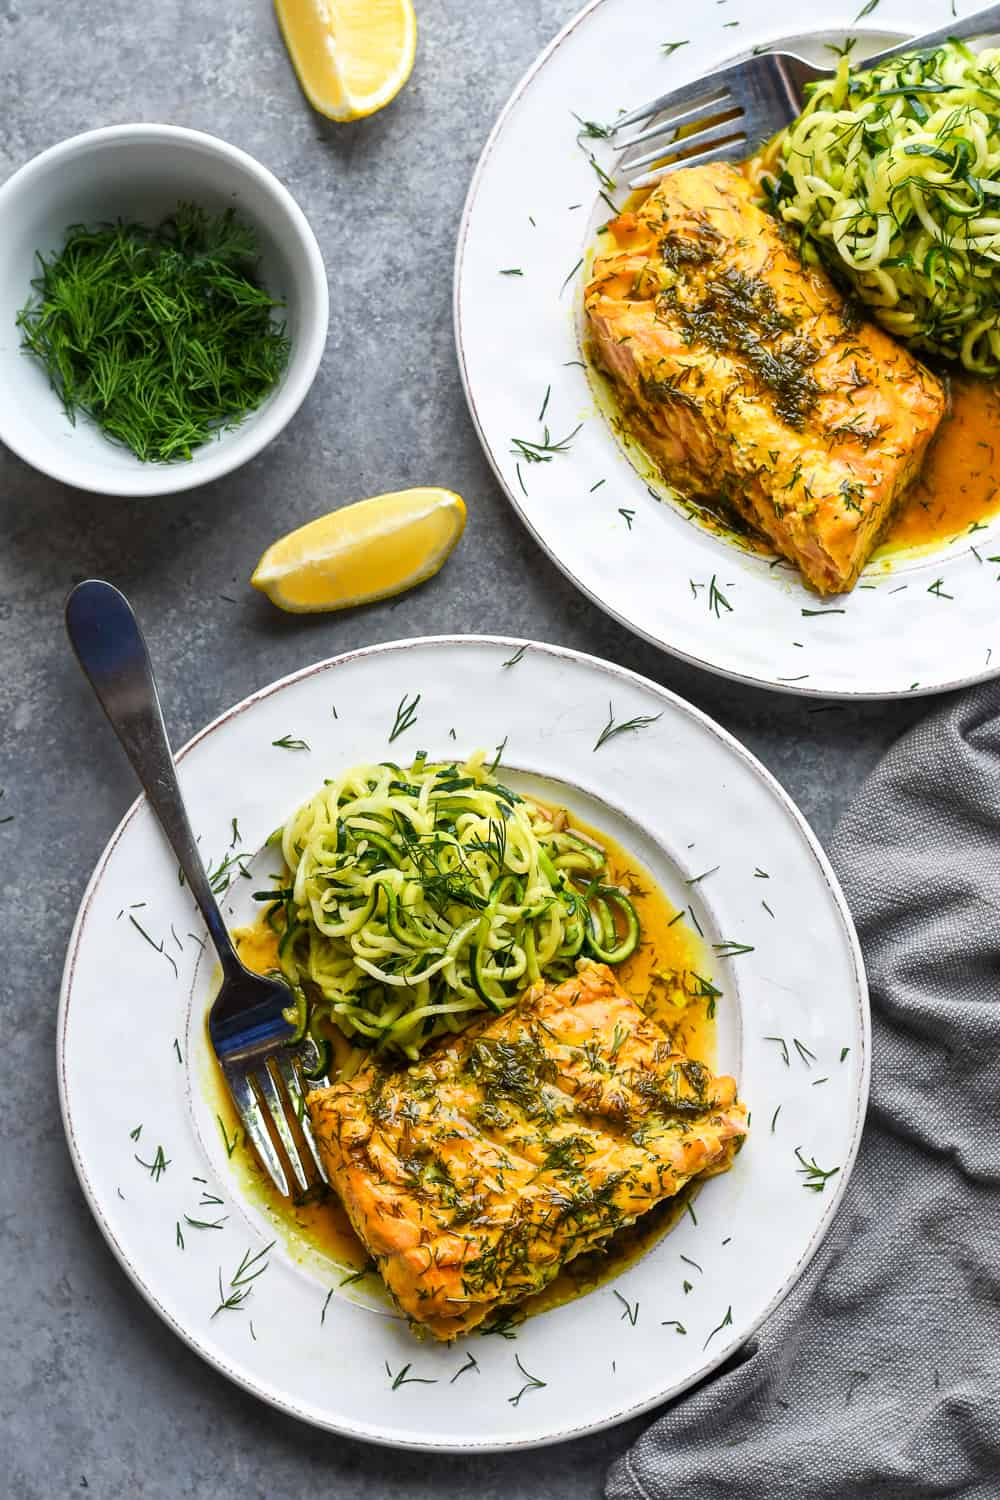 Roasted Dill Salmon over 2 plates